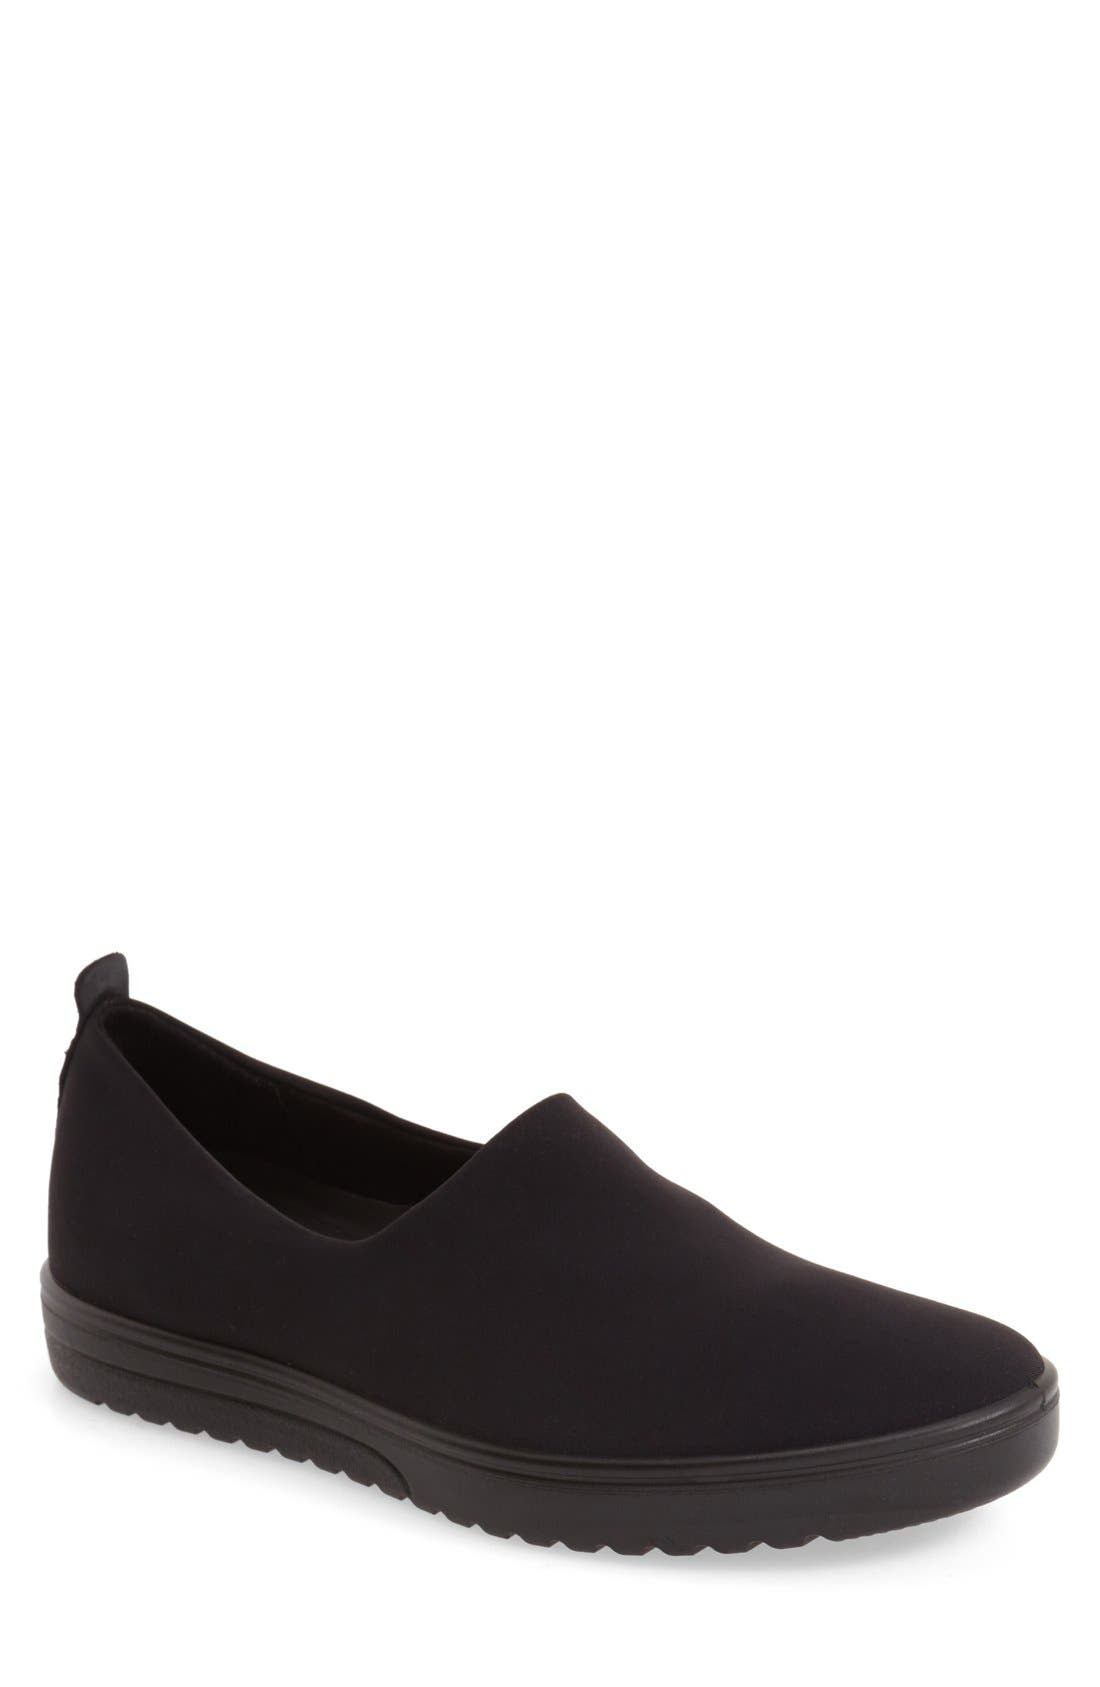 'Fara' Slip-On Sneaker,                             Main thumbnail 2, color,